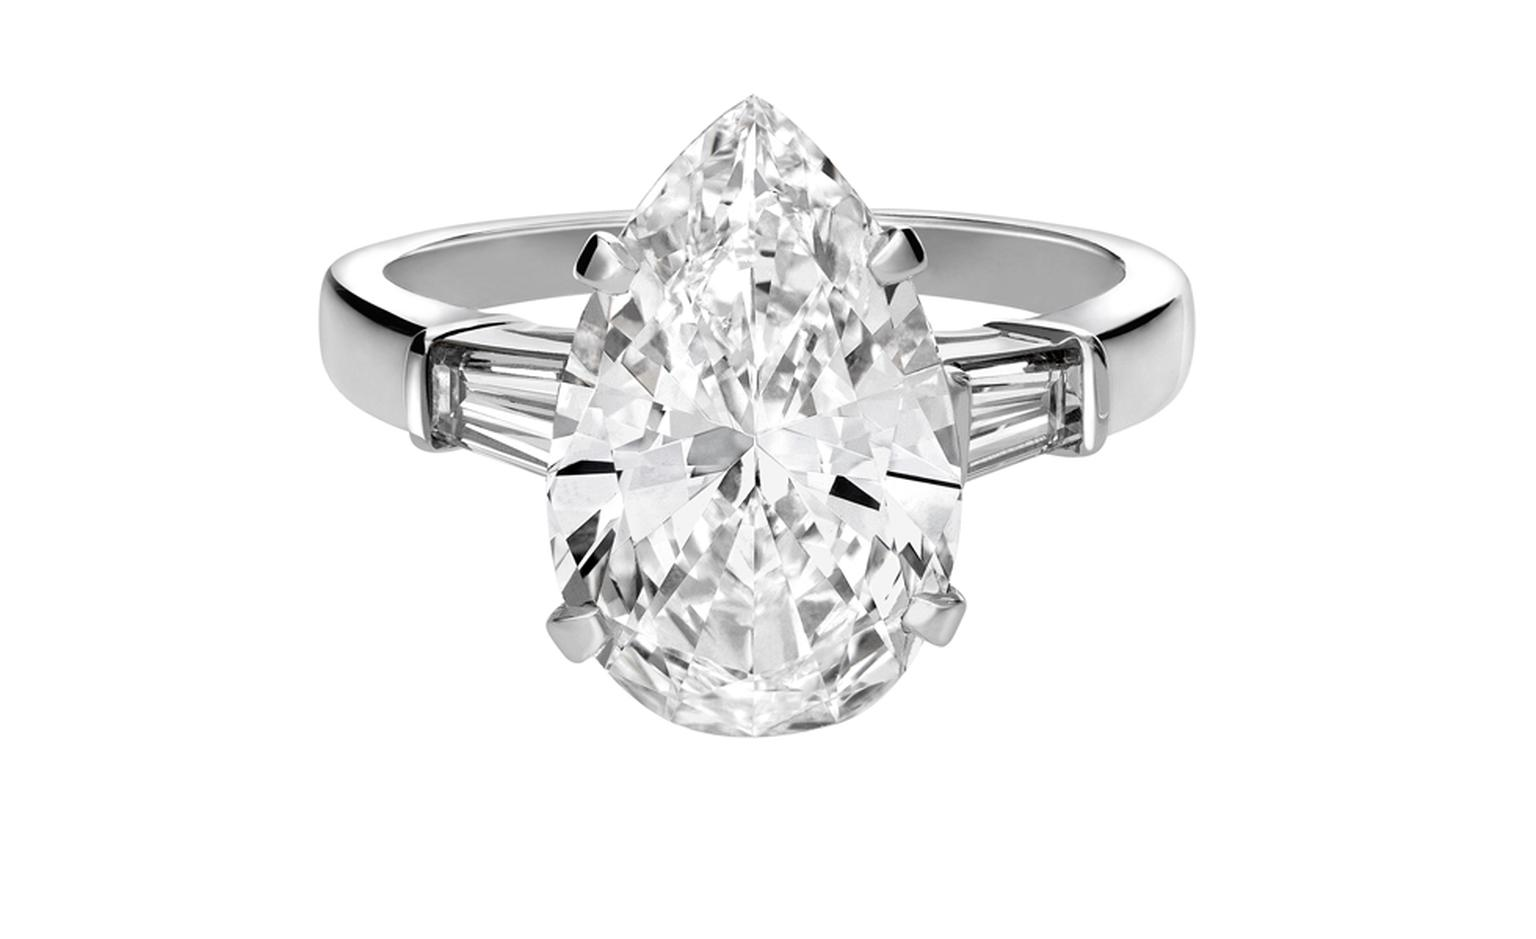 BULGARI, Ring in platinum 1 pear shaped diamond, 2 tapered baguette diamonds. POA